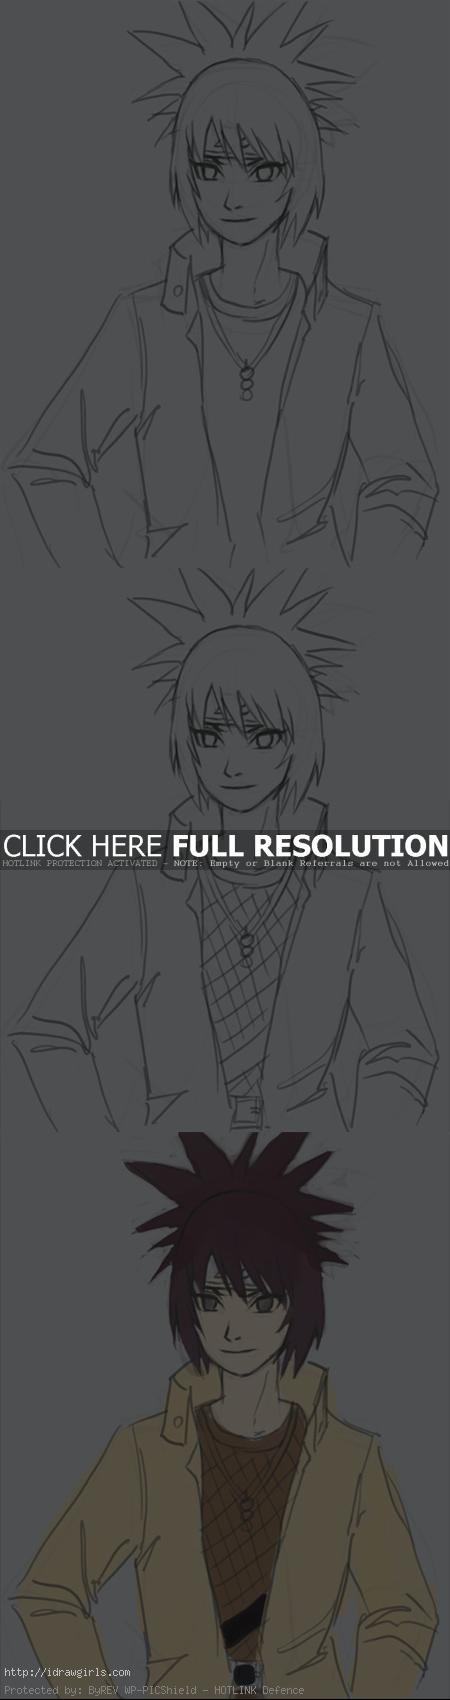 How to draw Anko Mitarashi part 2